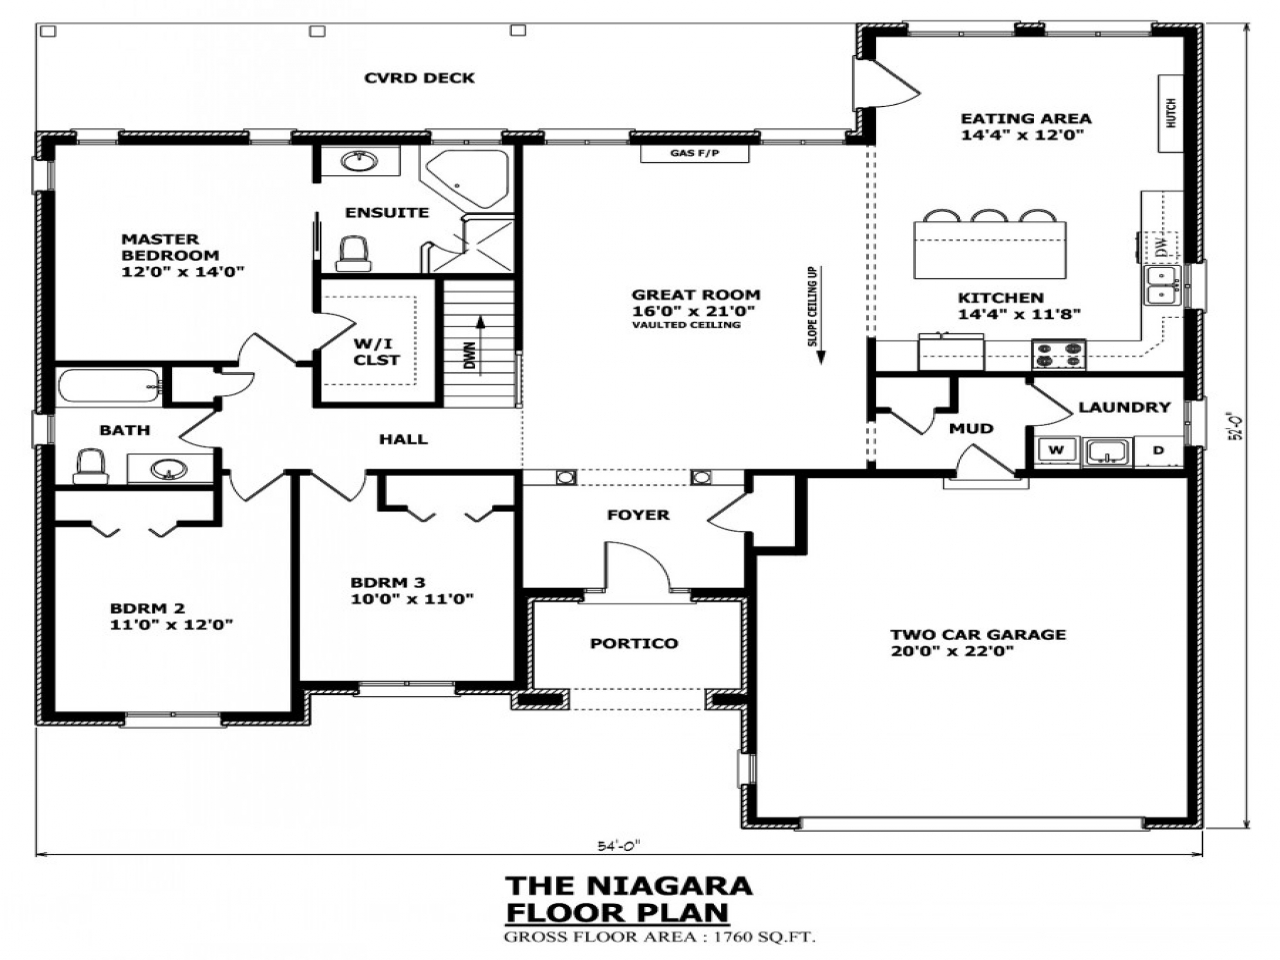 Tiny Home Designs: House Plans Canada Global House Plans Canada, Cabin Floor